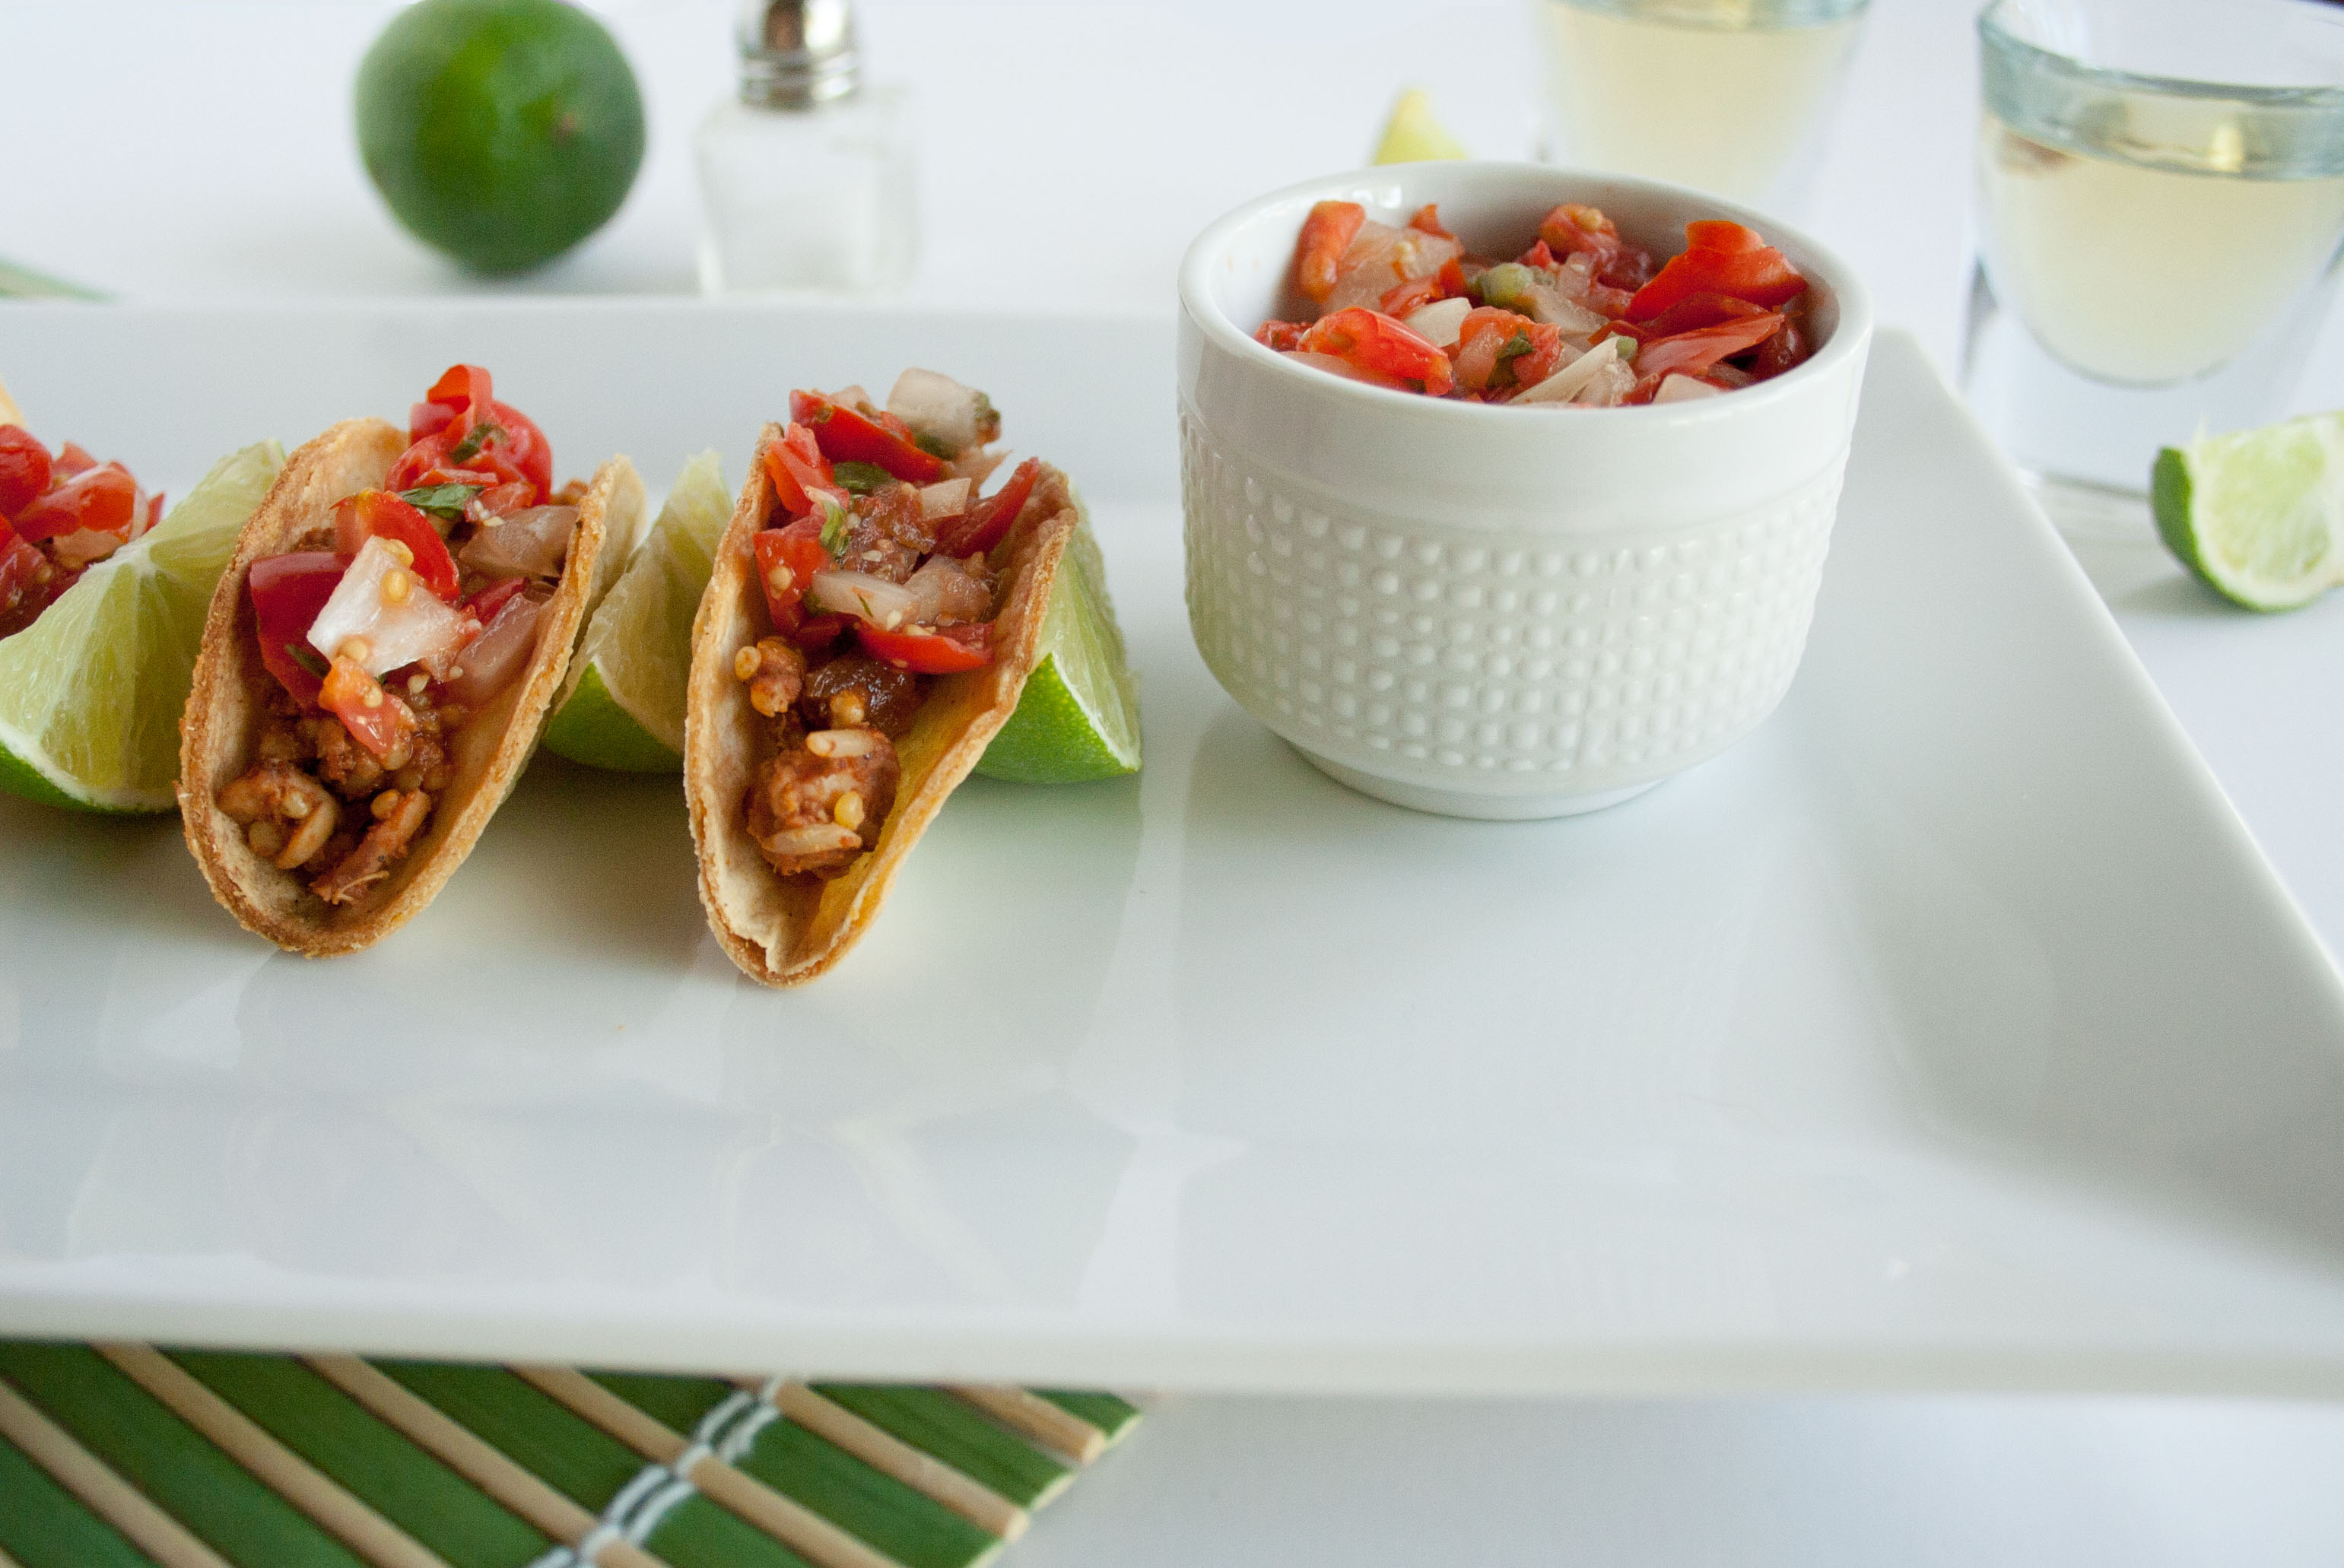 Mini Tempeh Tacos with Pico de Gallo